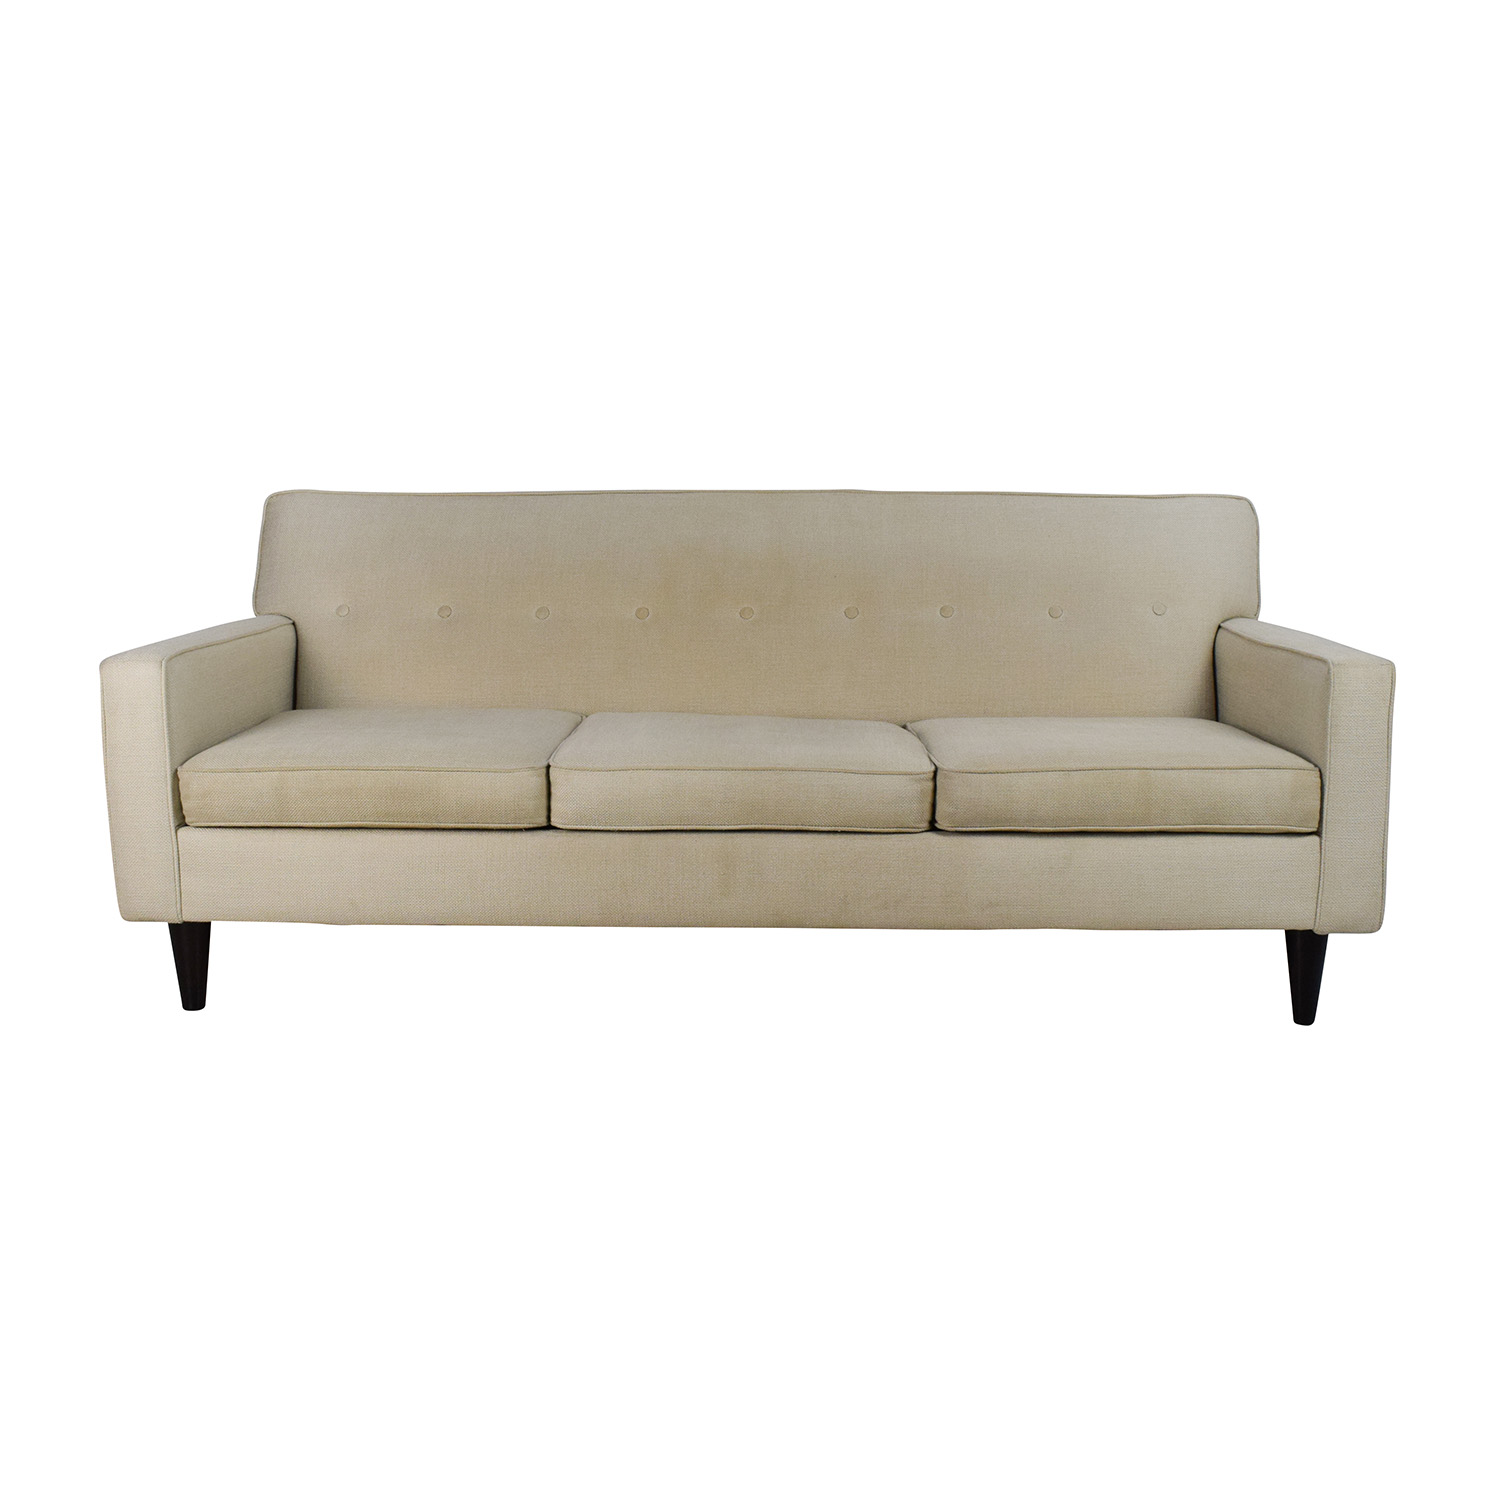 OFF Max Home Furniture Max Home Mid Century Sofa Sofas